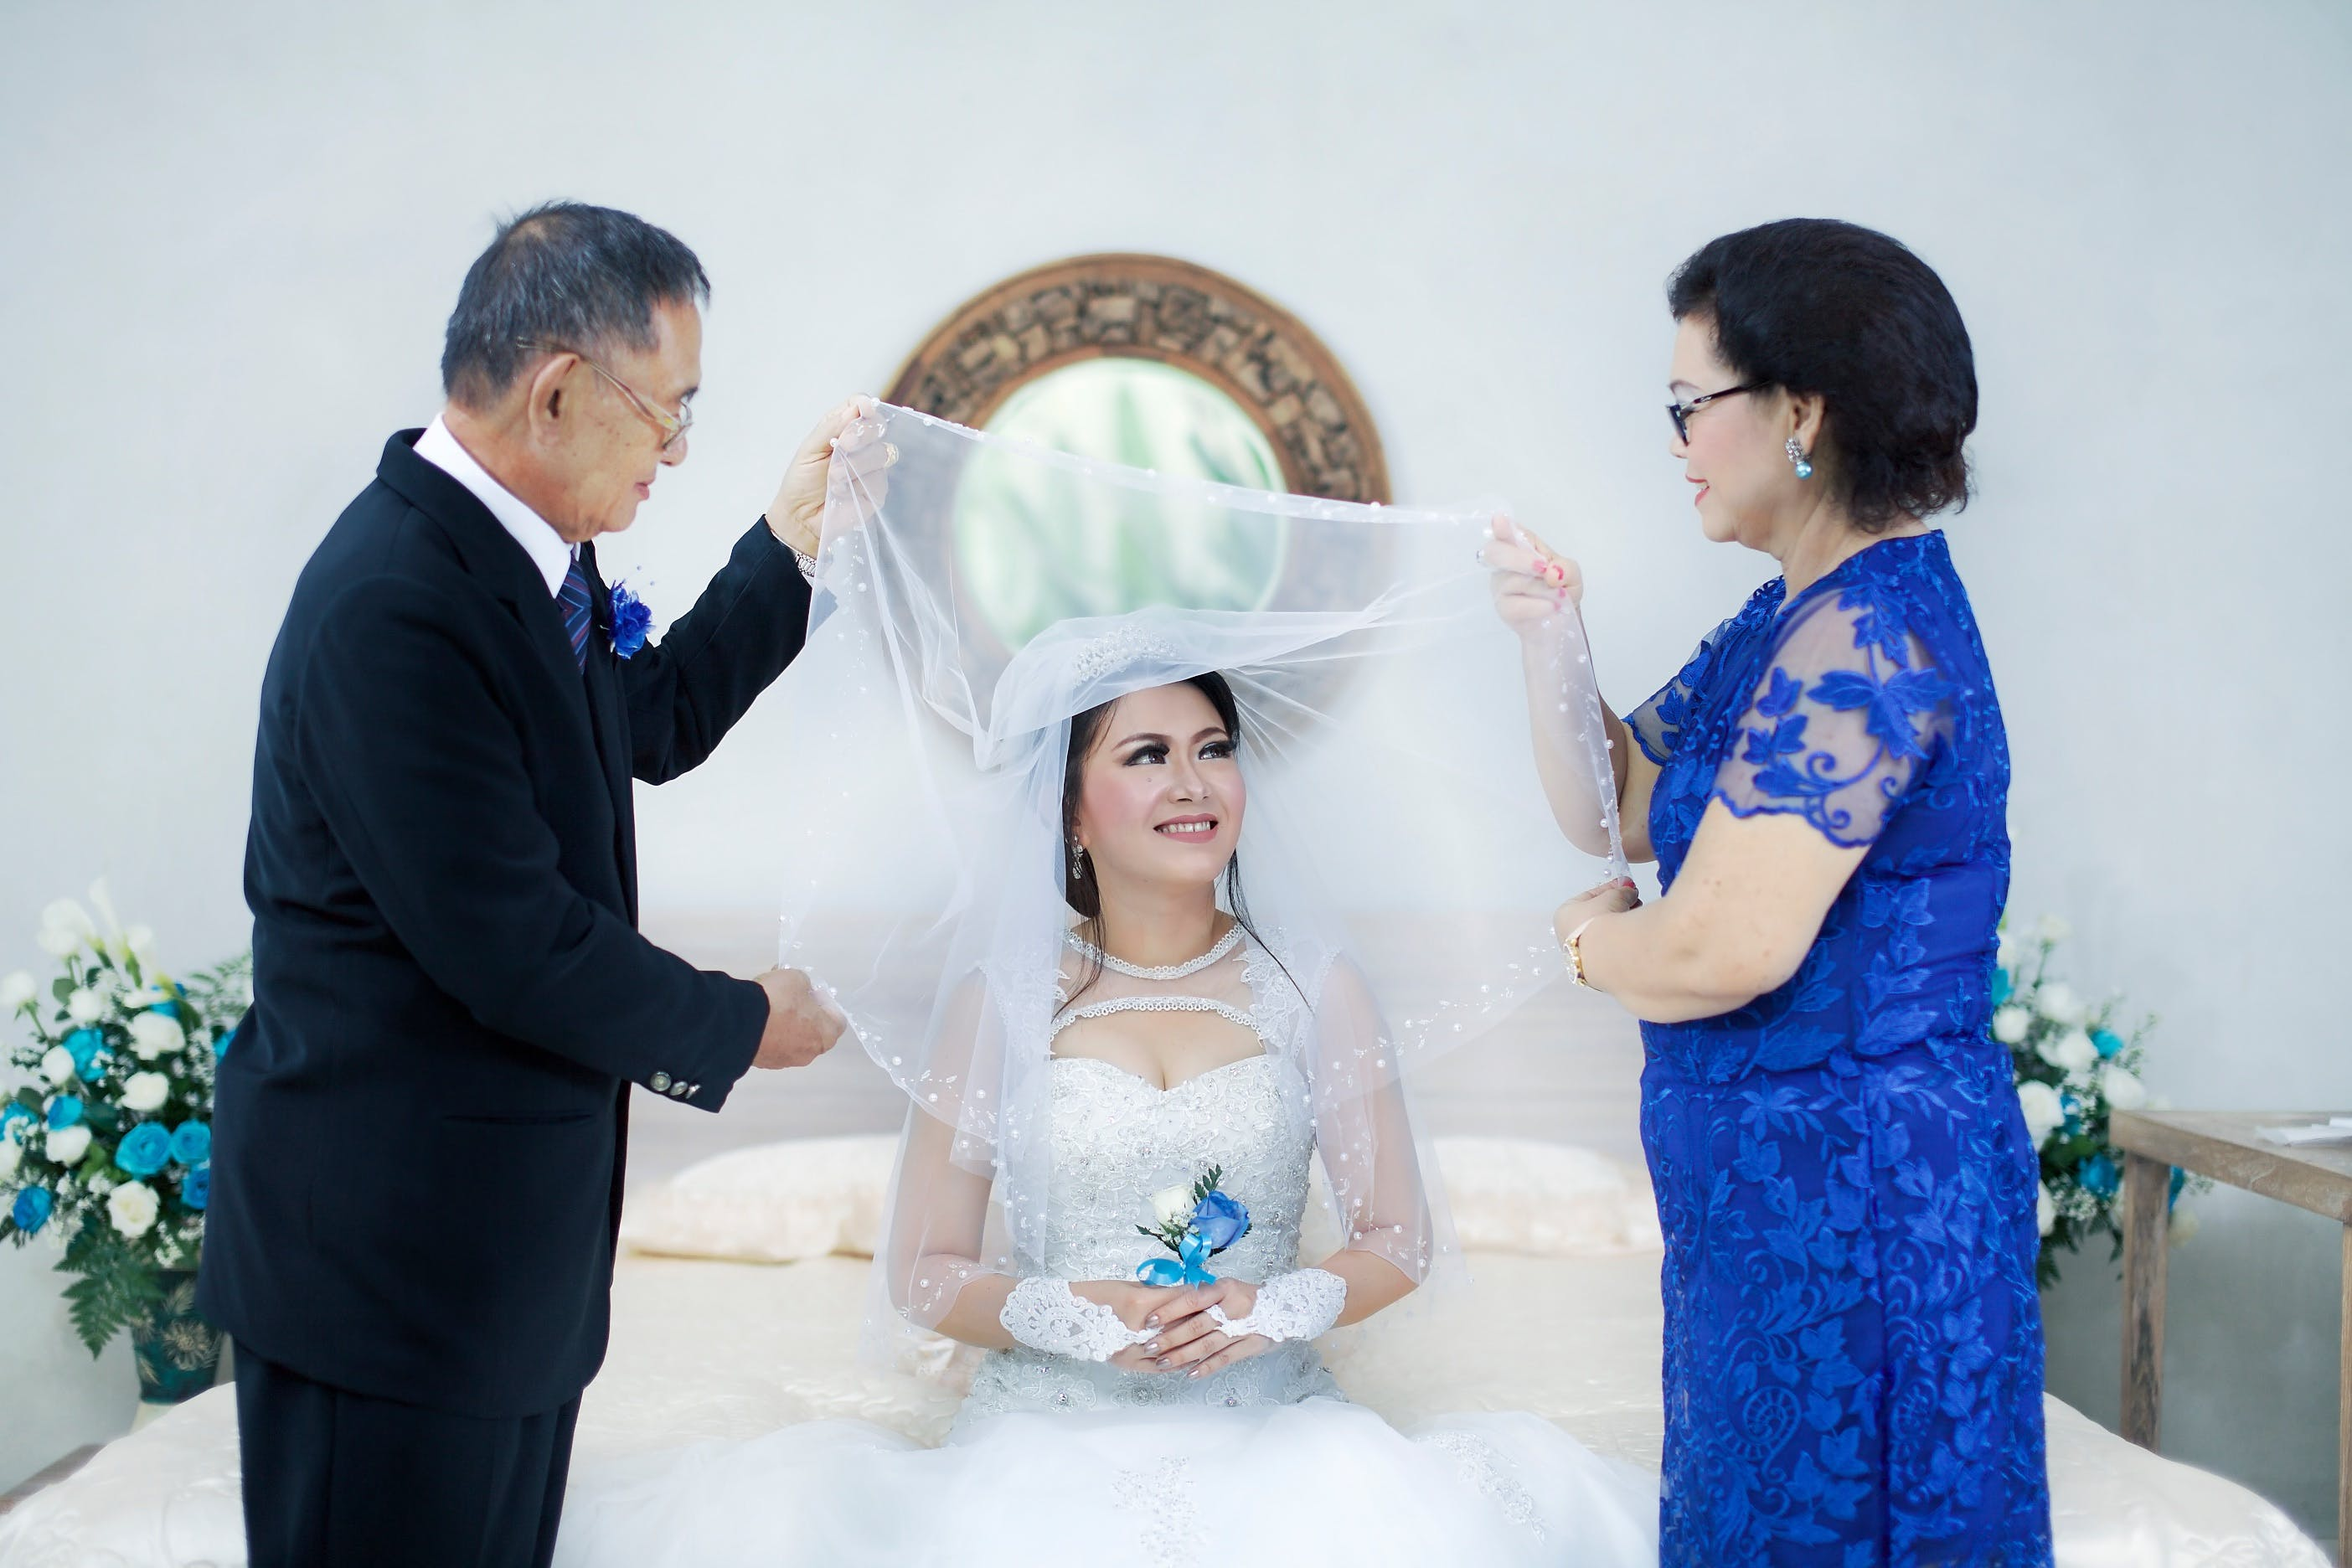 Woman in Wedding Dress Between Man in Formal Suit and Woman in Blue Dress